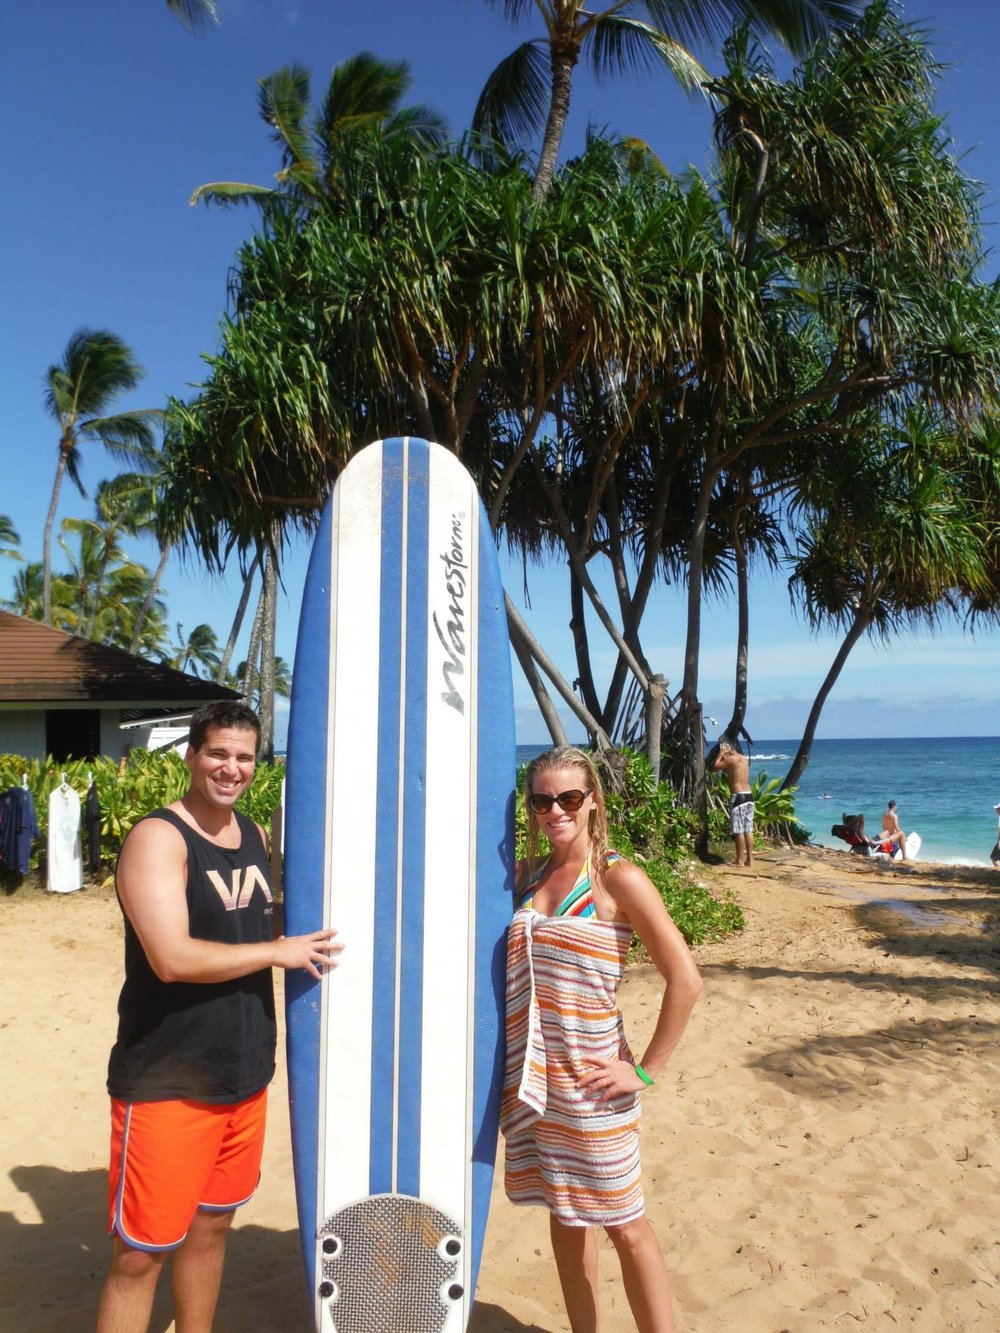 Surf's up in Hawaii!